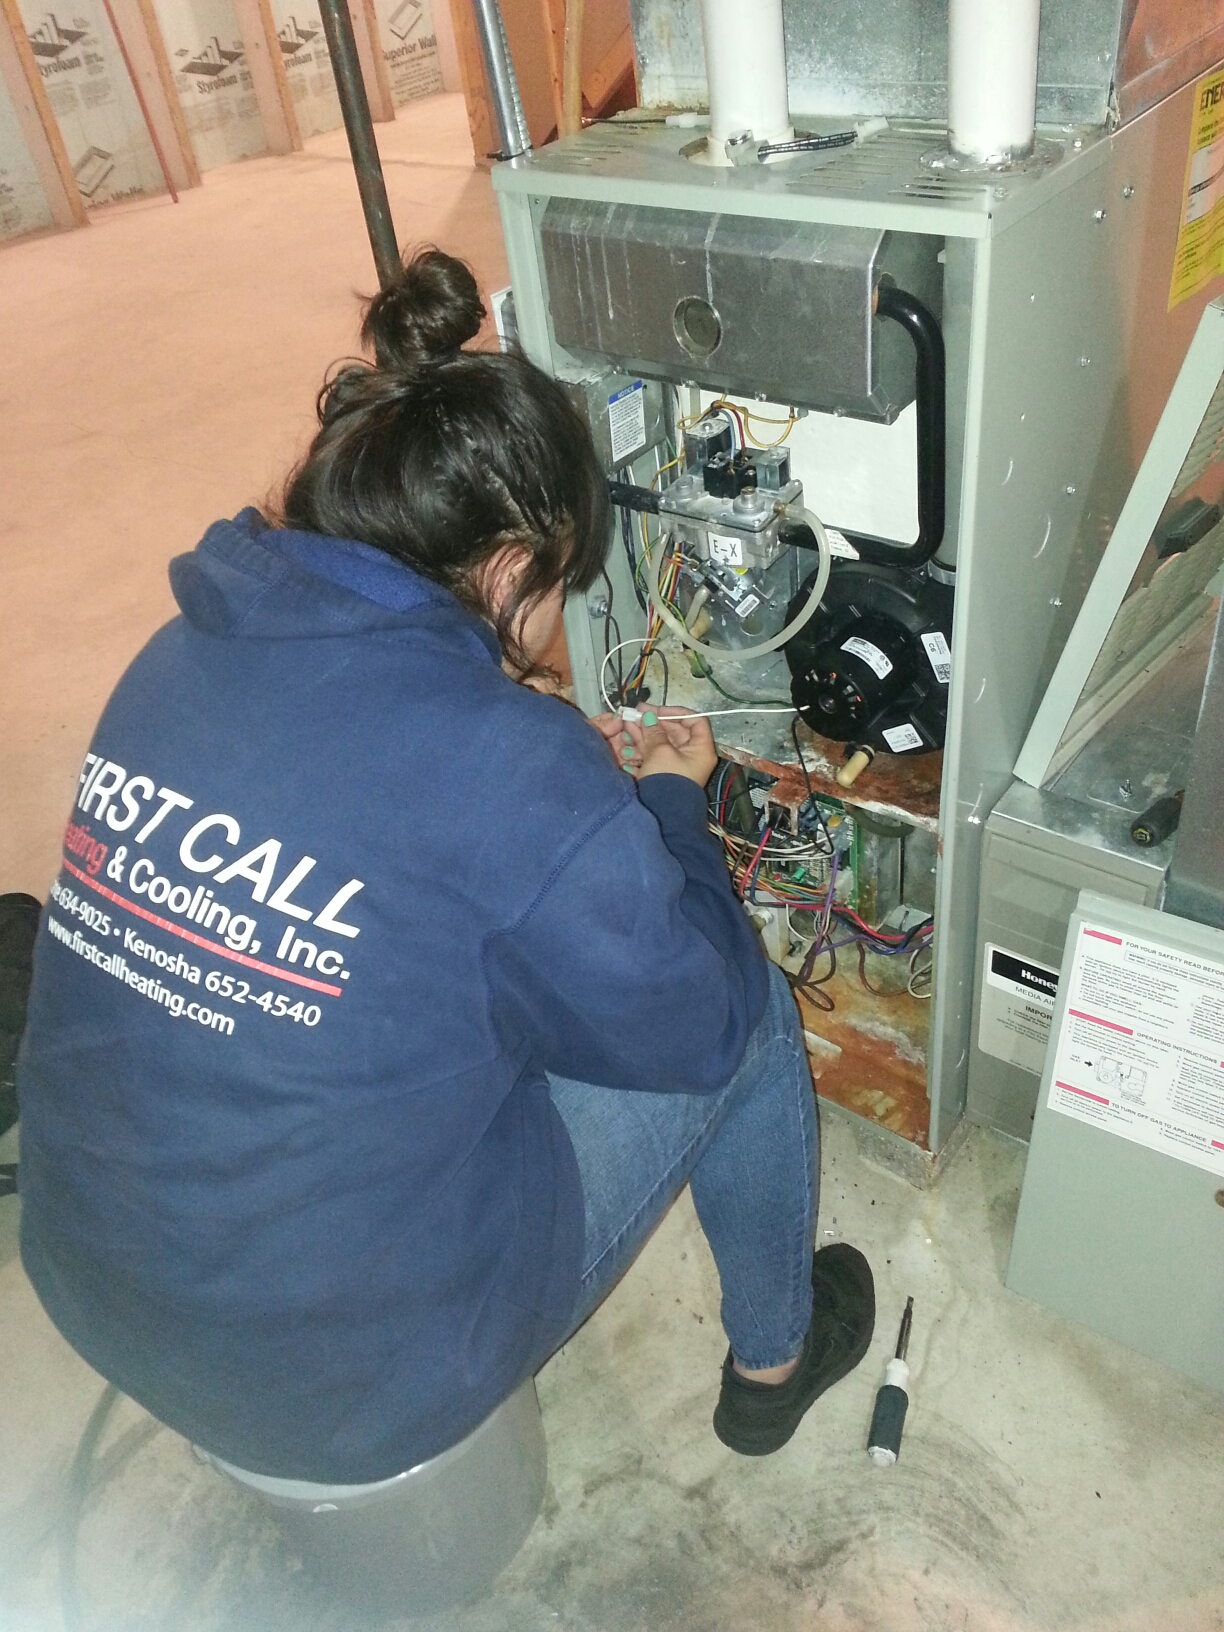 Nest Thermostat Heat Pump Wiring Diagram in addition Carrier Rooftop Package Units also Rheem Heat Pump Thermostat Wiring Diagram as well Lennox Air Conditioner Wiring Diagram additionally Fan Motor For Trane Heat Pump Wiring Diagram. on 2 5 ton trane heat pump wiring diagram